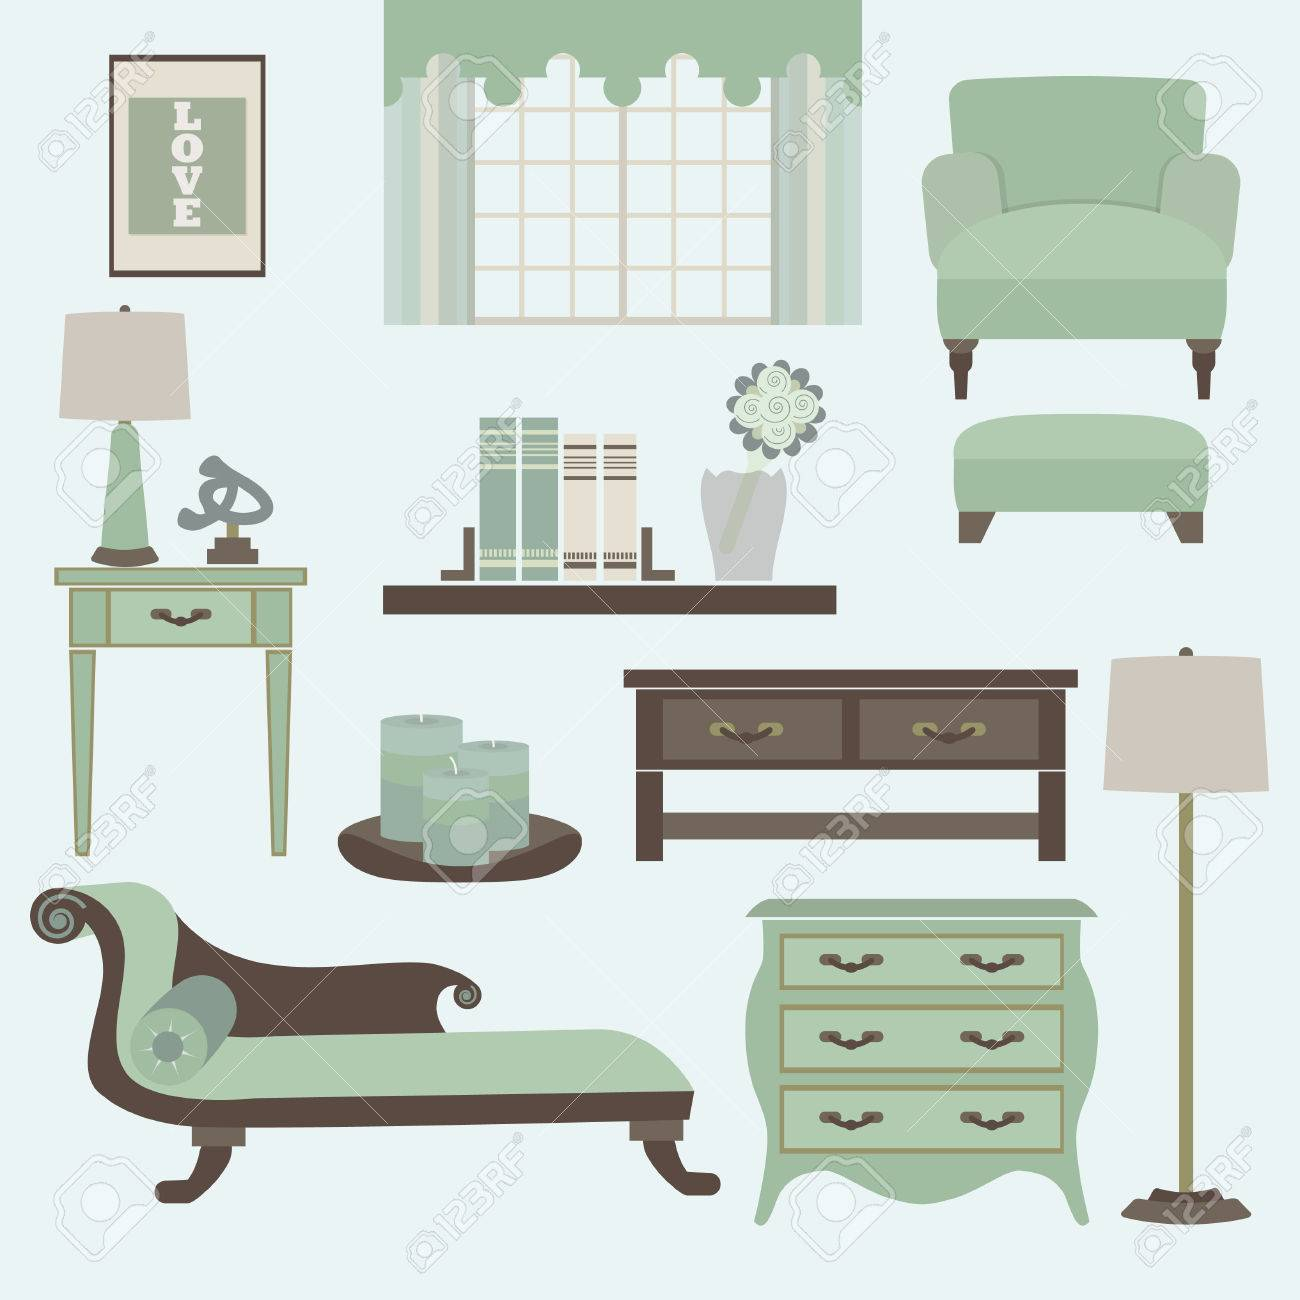 Living Room Furniture And Accessories In Color Teal Royalty Free ...